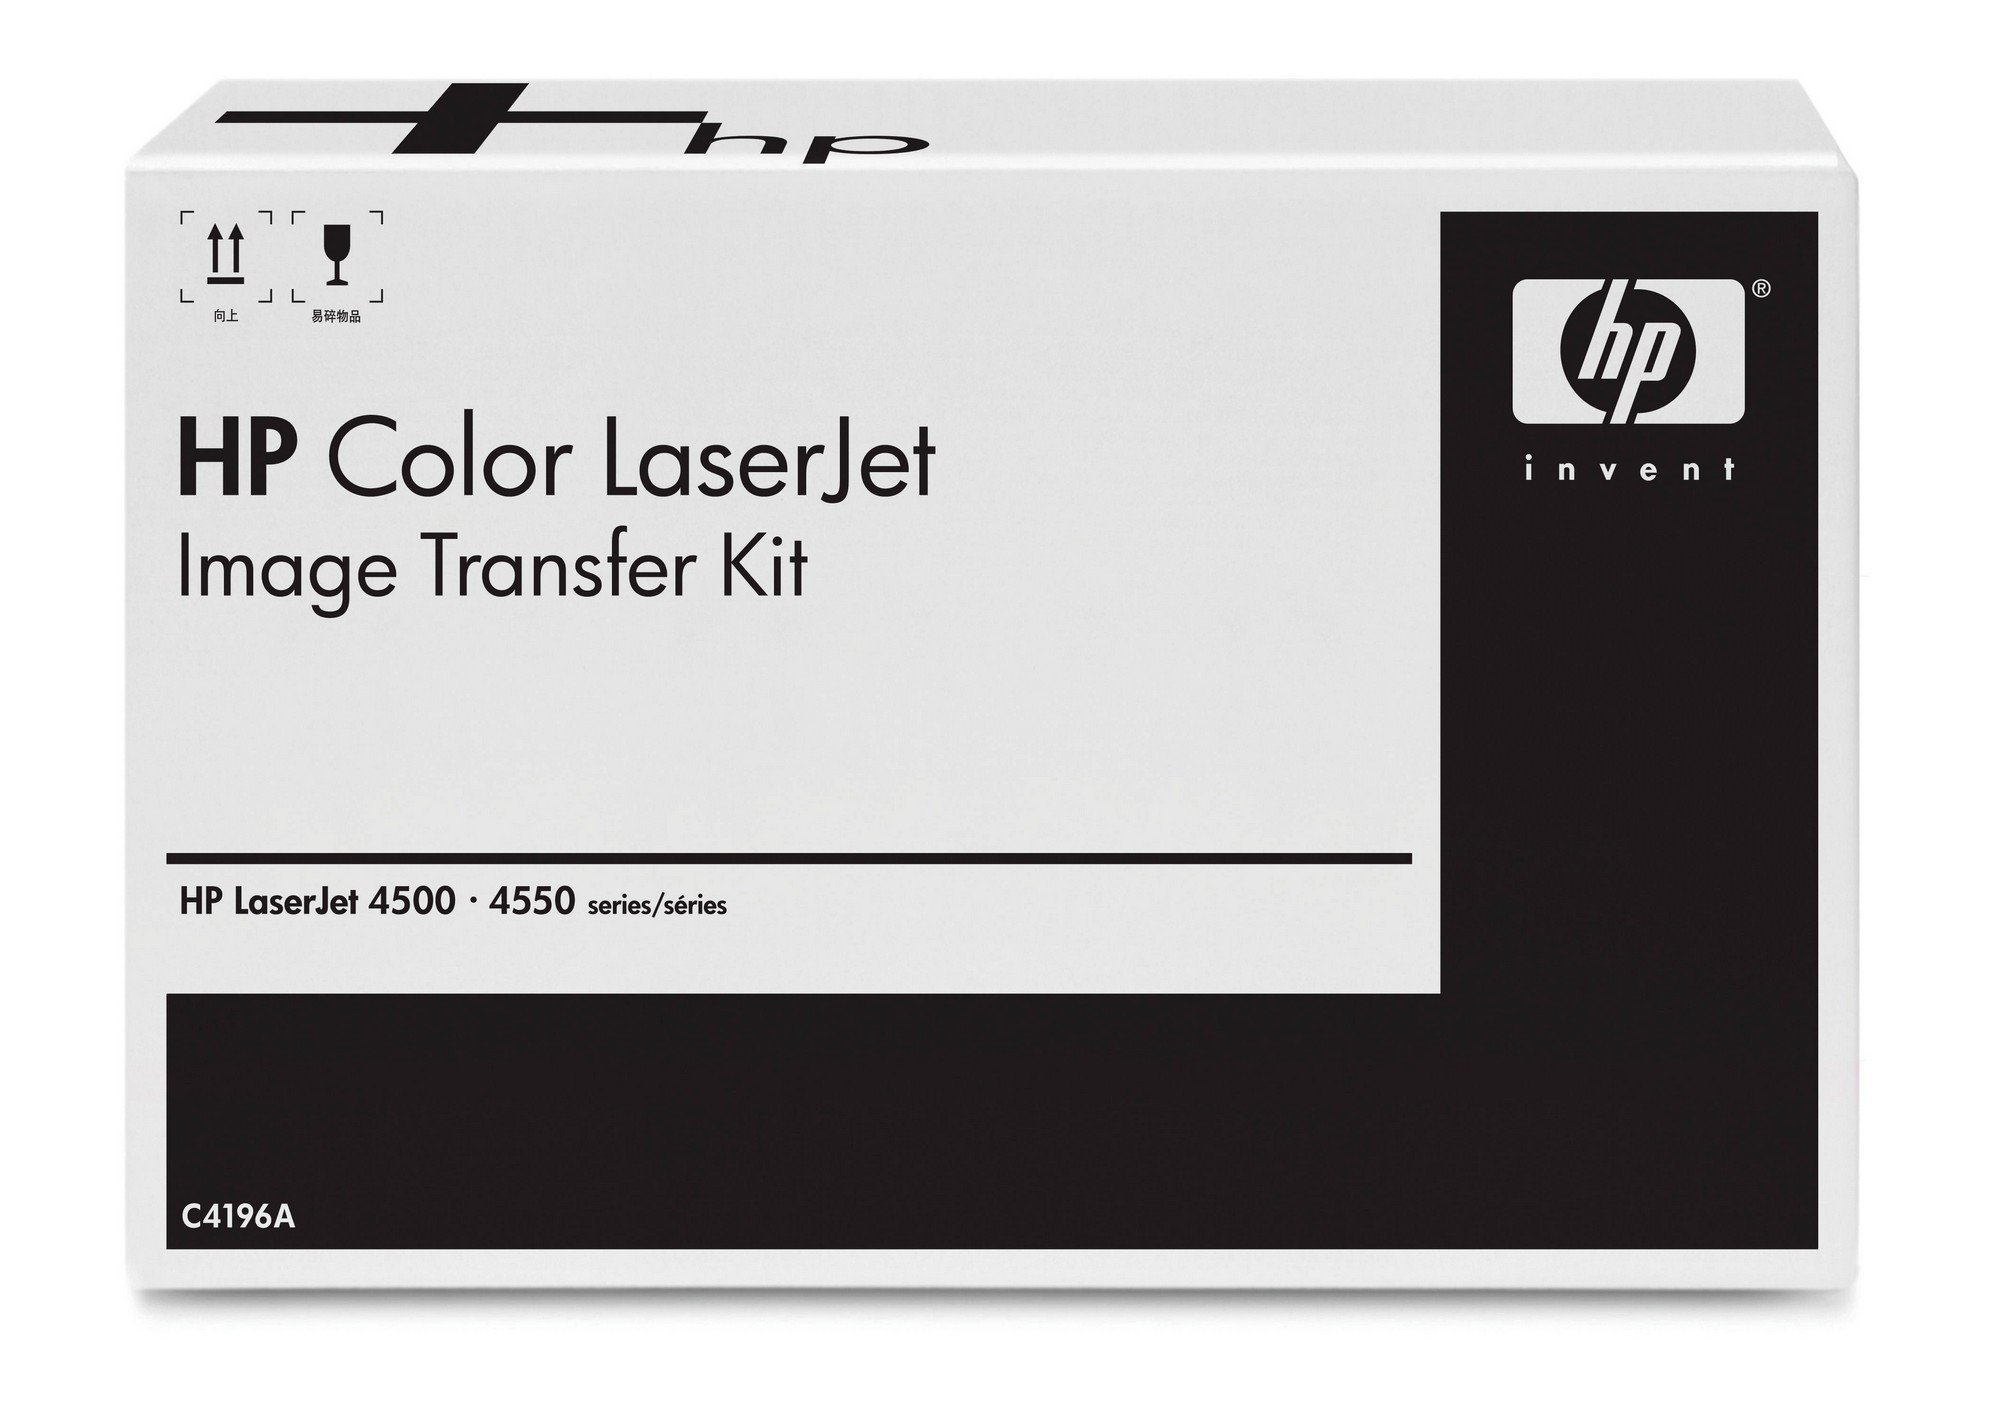 HP Hewlett Packard colour laserjet 5500 5550 5500n 5550n 5500dn 5550dn C9734B C9734A printer transfer kit